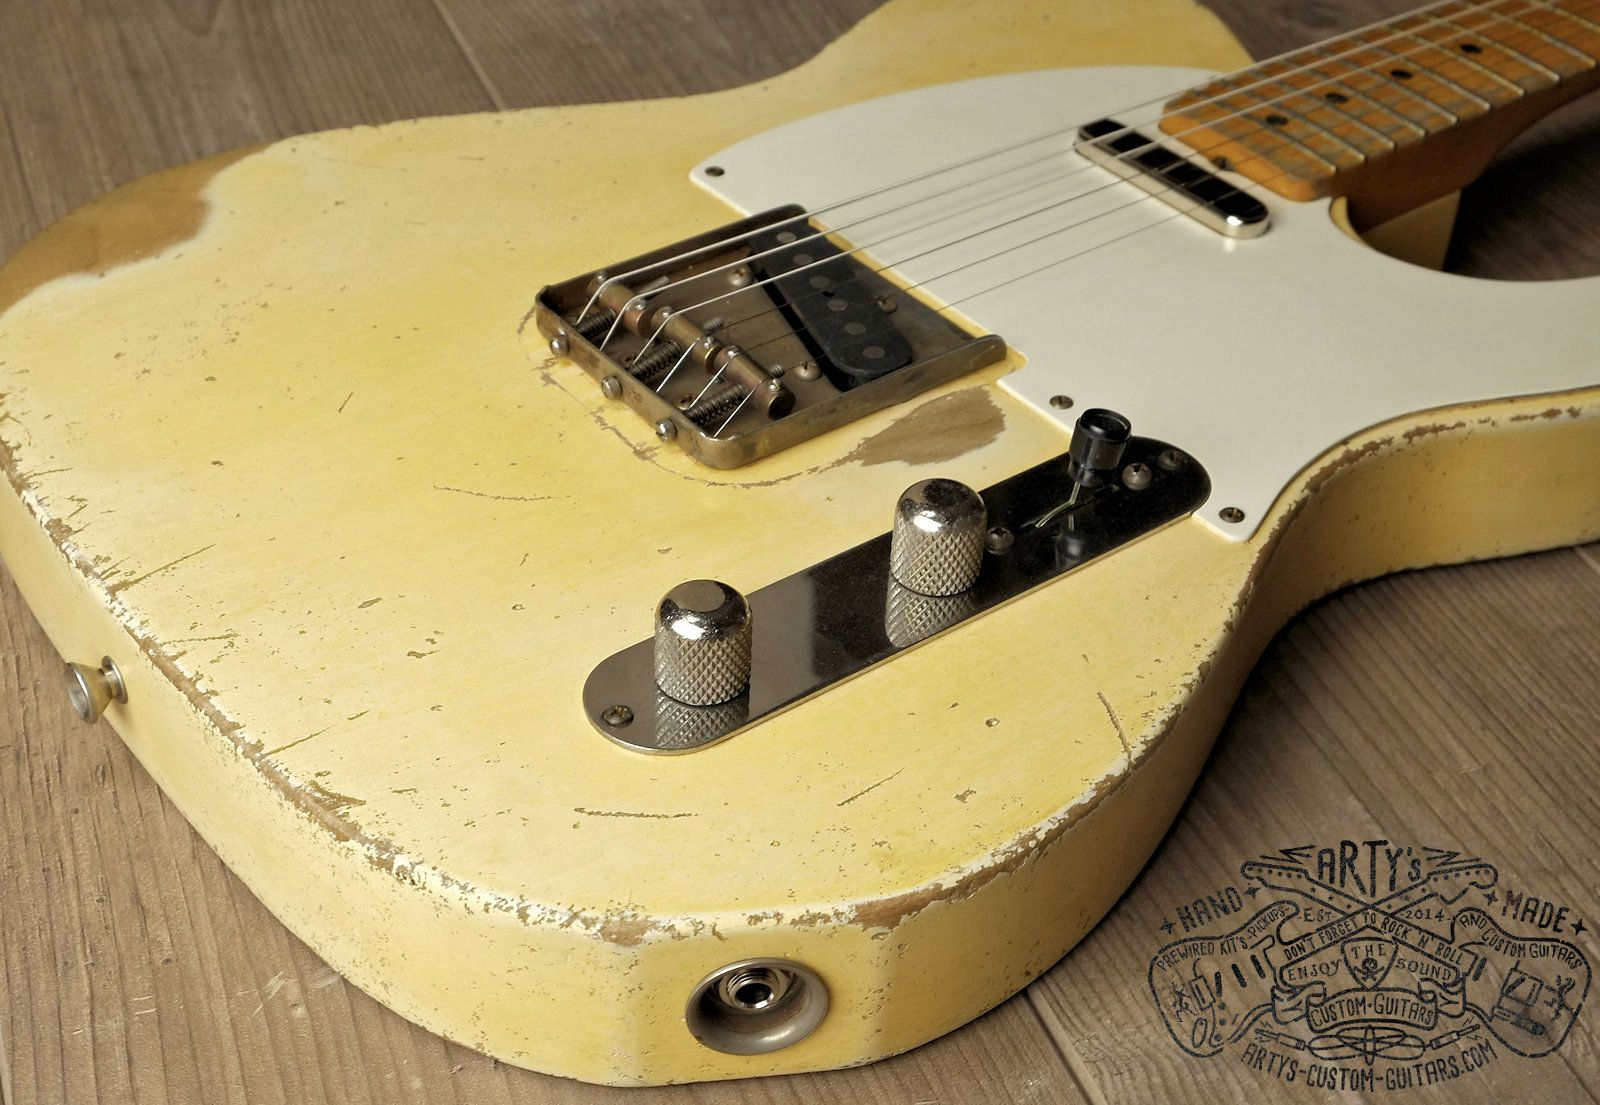 medium resolution of vintage blonde 1958 telecaster maple neck alder body nitro finish relic aged arty s custom guitars blond 58 tele